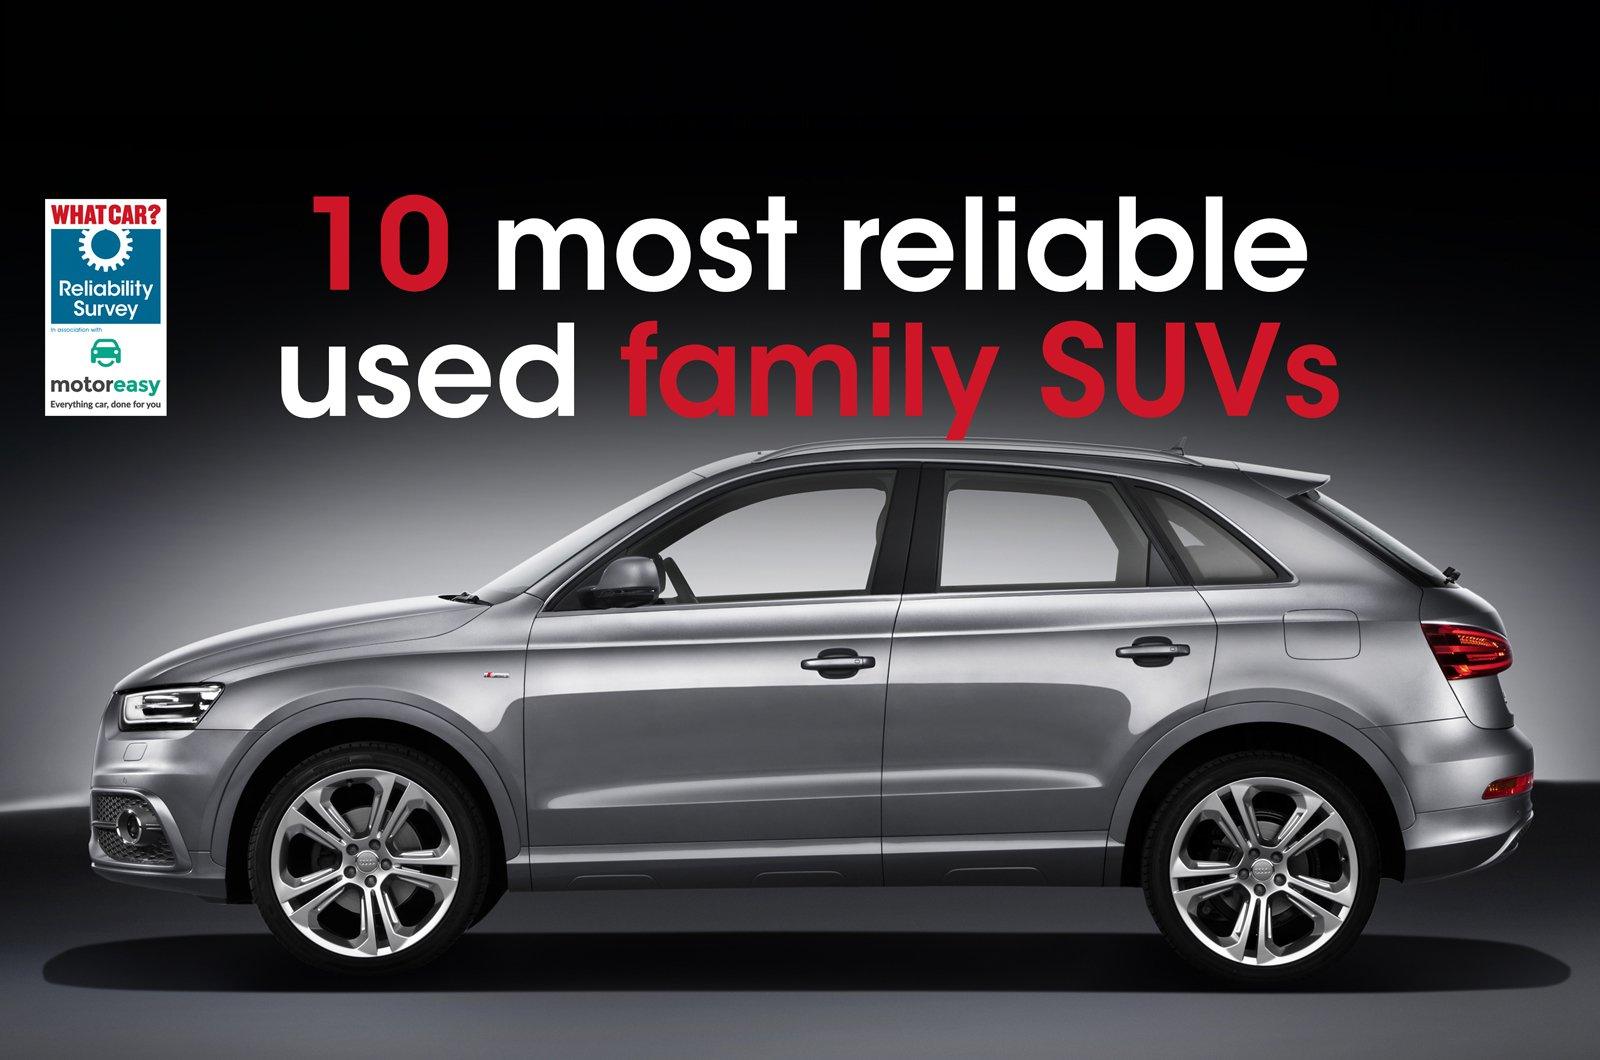 Top 10 most reliable used family SUVs